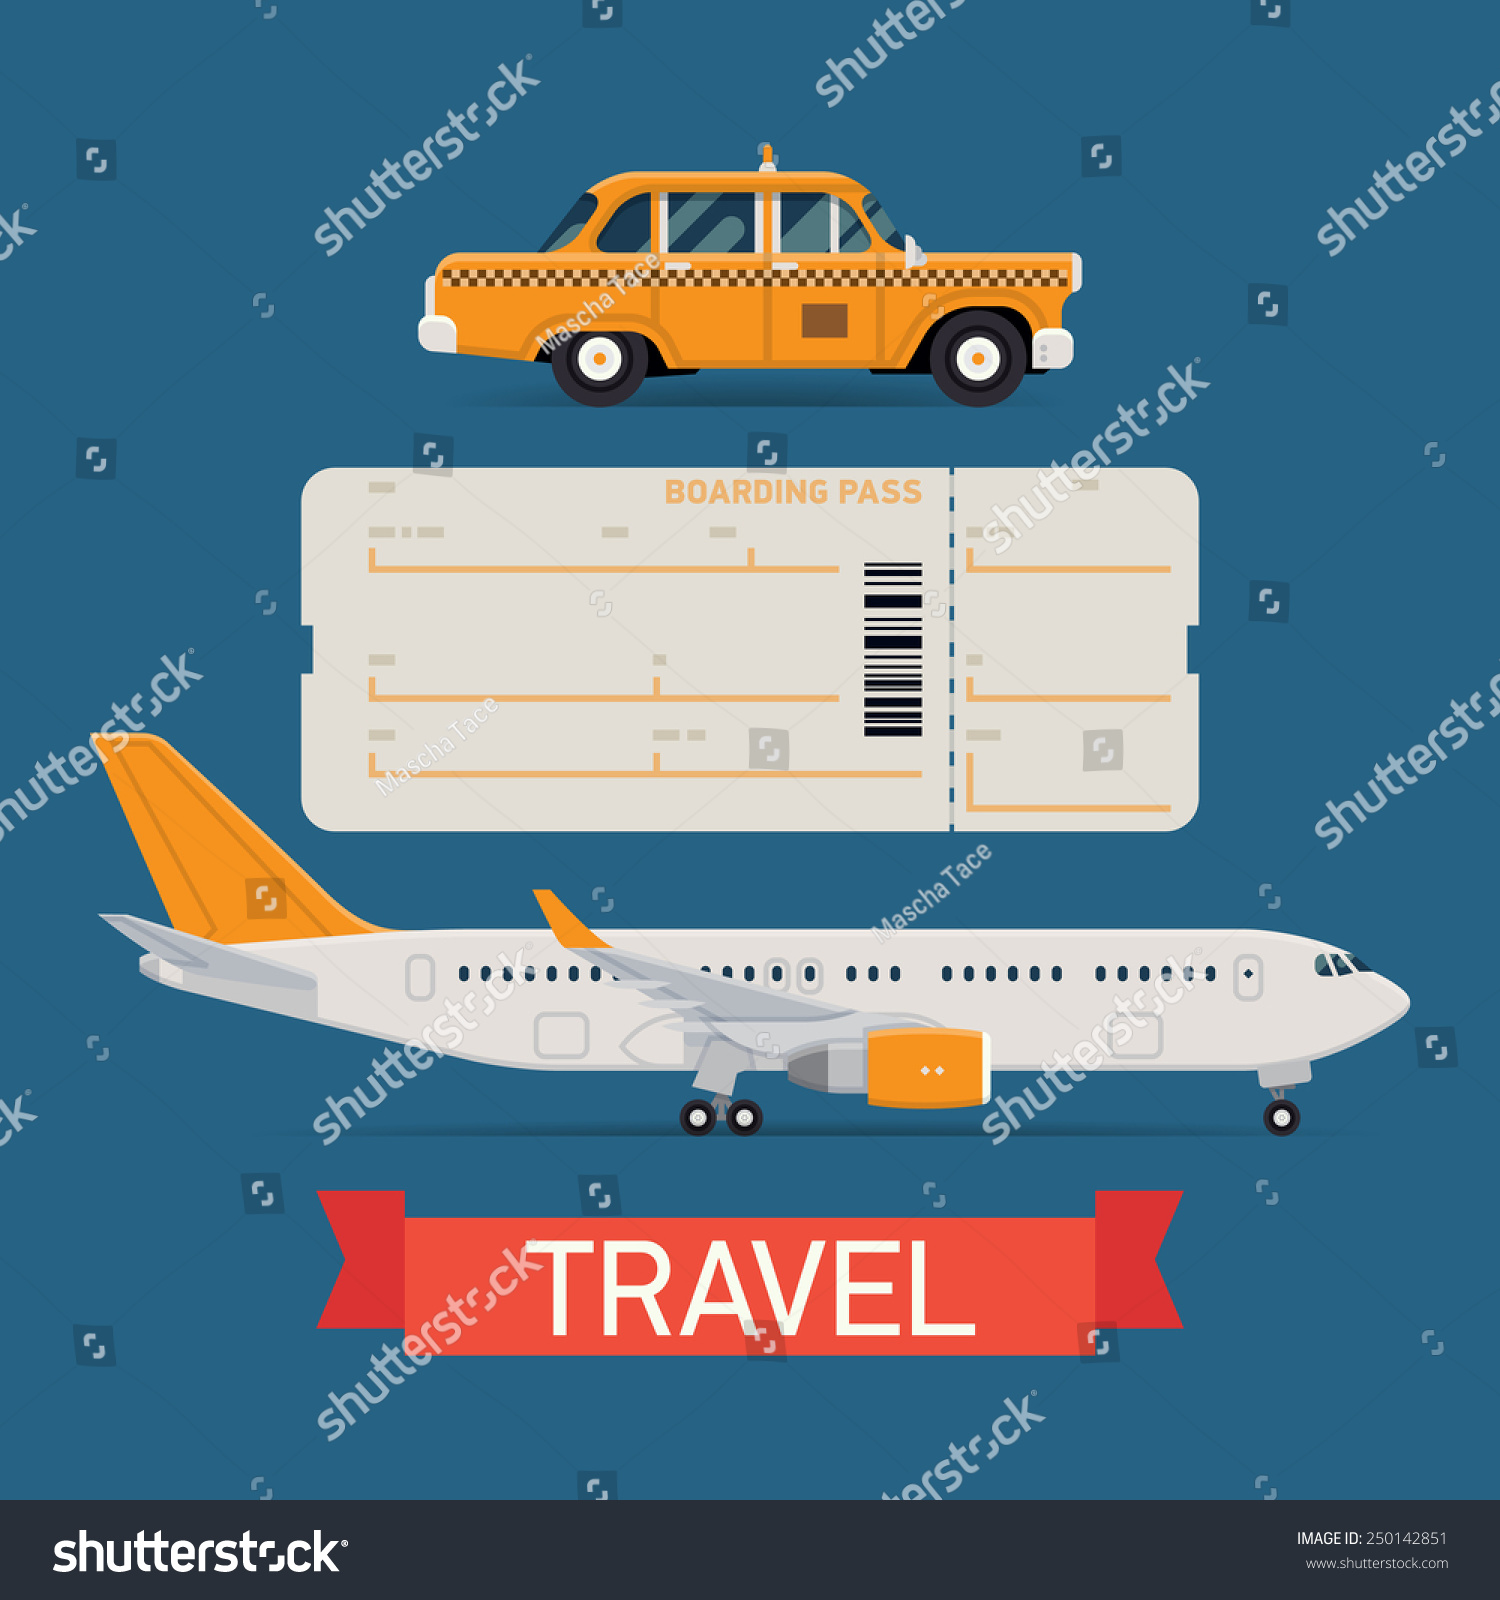 Vector set on travel flat design transportation icons featuring passenger jet airliner boarding pass airfare ticket blank and city yellow cab taxi vehicle